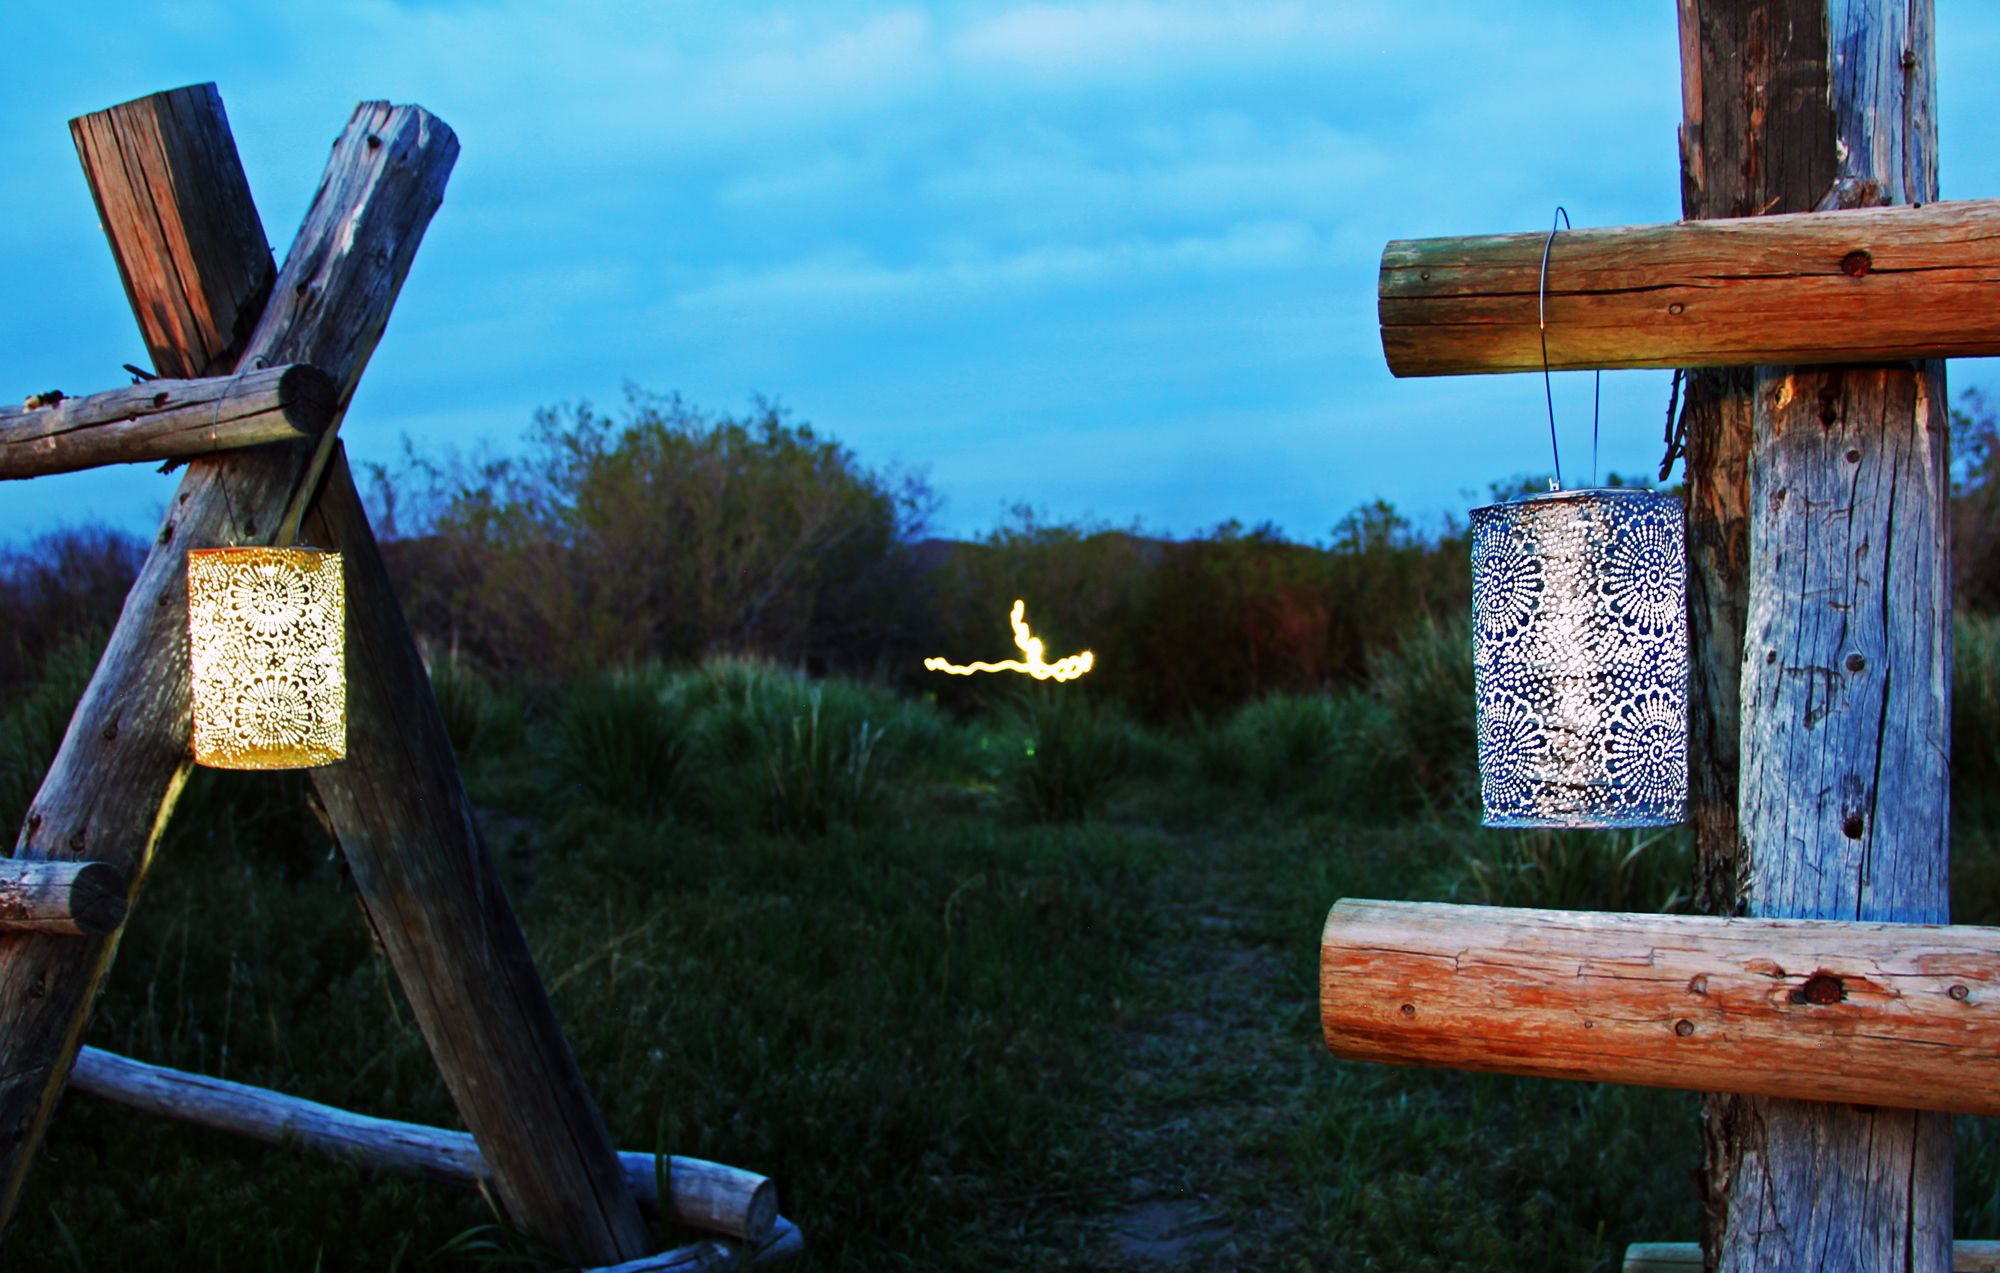 Our Soji Stella Lanterns From Allsop Garden Are Great To Take Camping.  There Are No